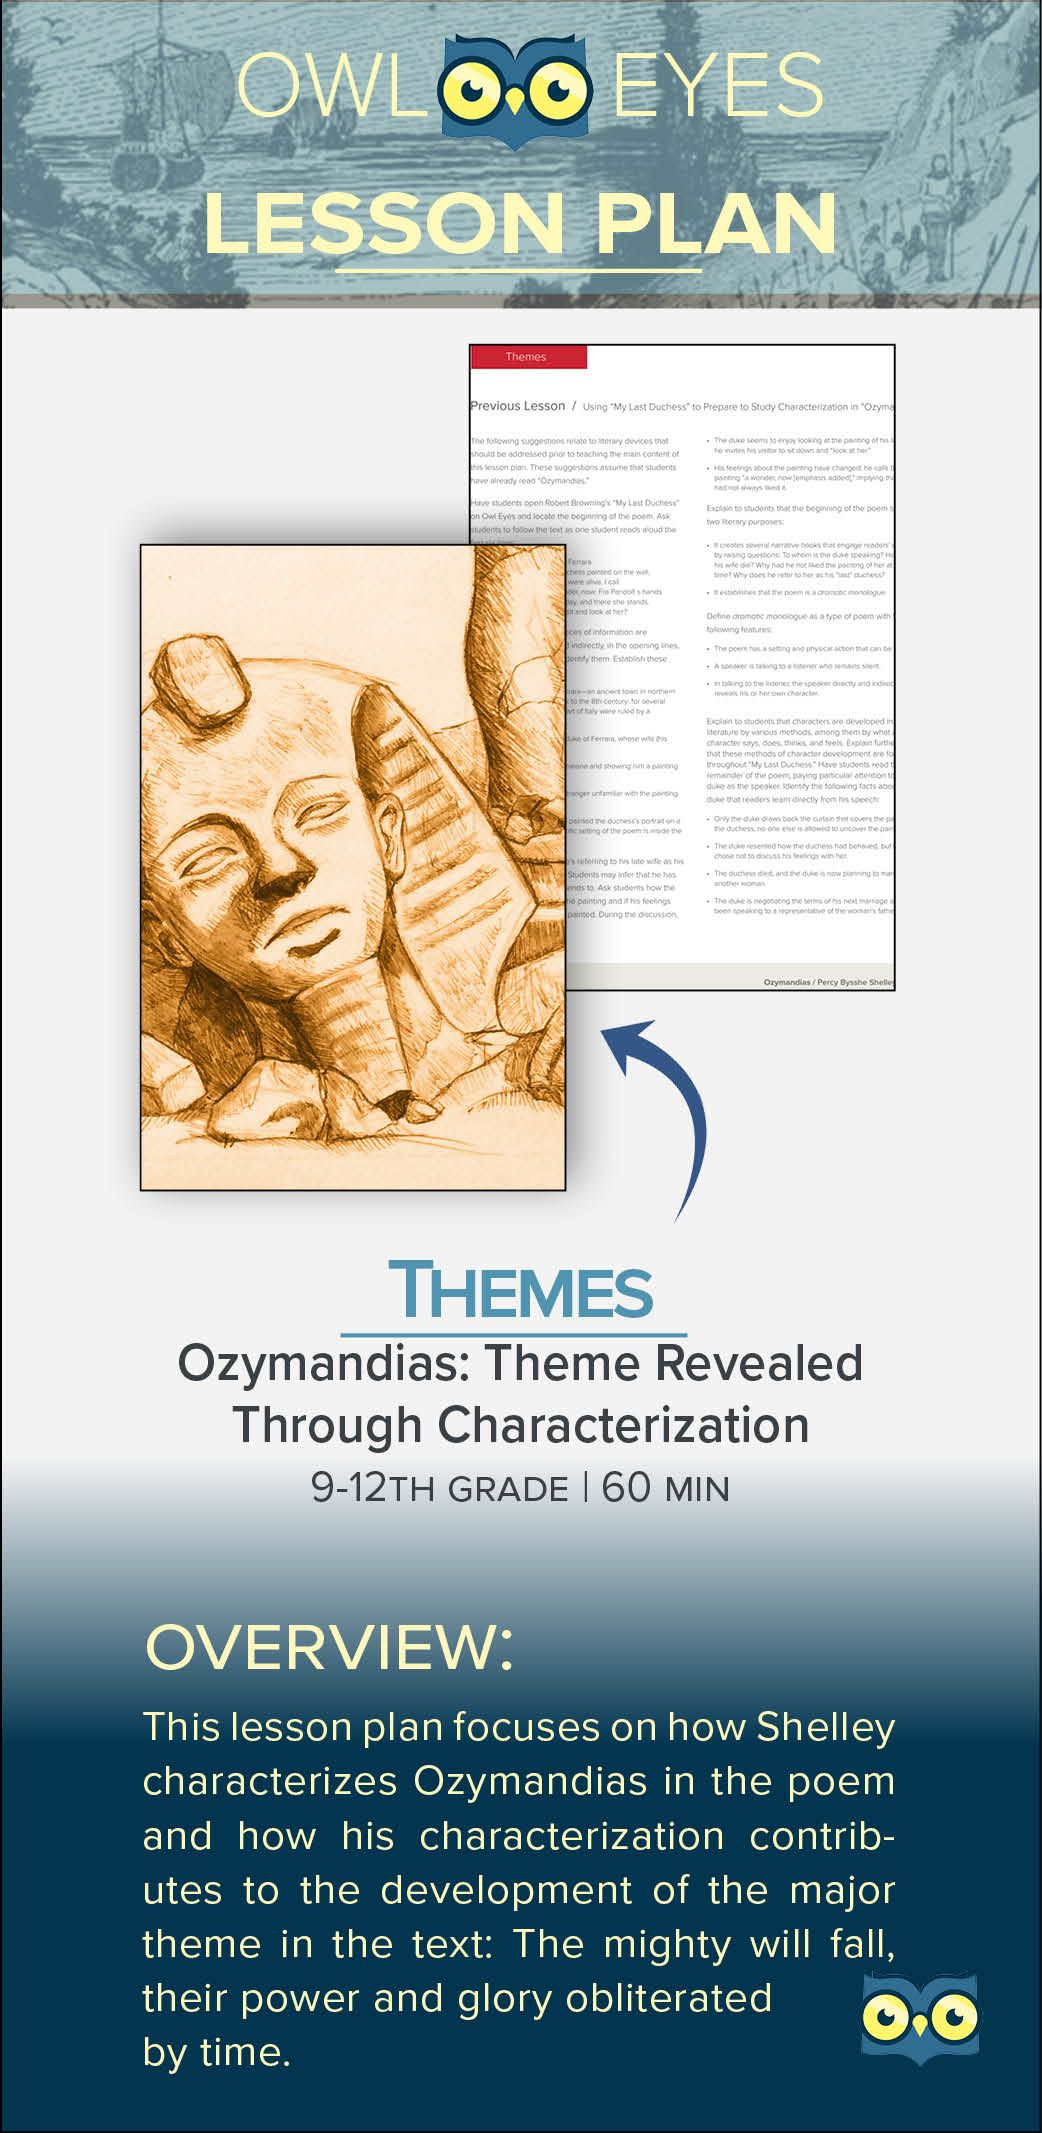 Download Our Newest Lesson Plan Covering Theme In Ozymandia By Percy Bysshe Shelley On Teacher Pay Teaching Guide Resource Classroom How To Of The Poem Pb